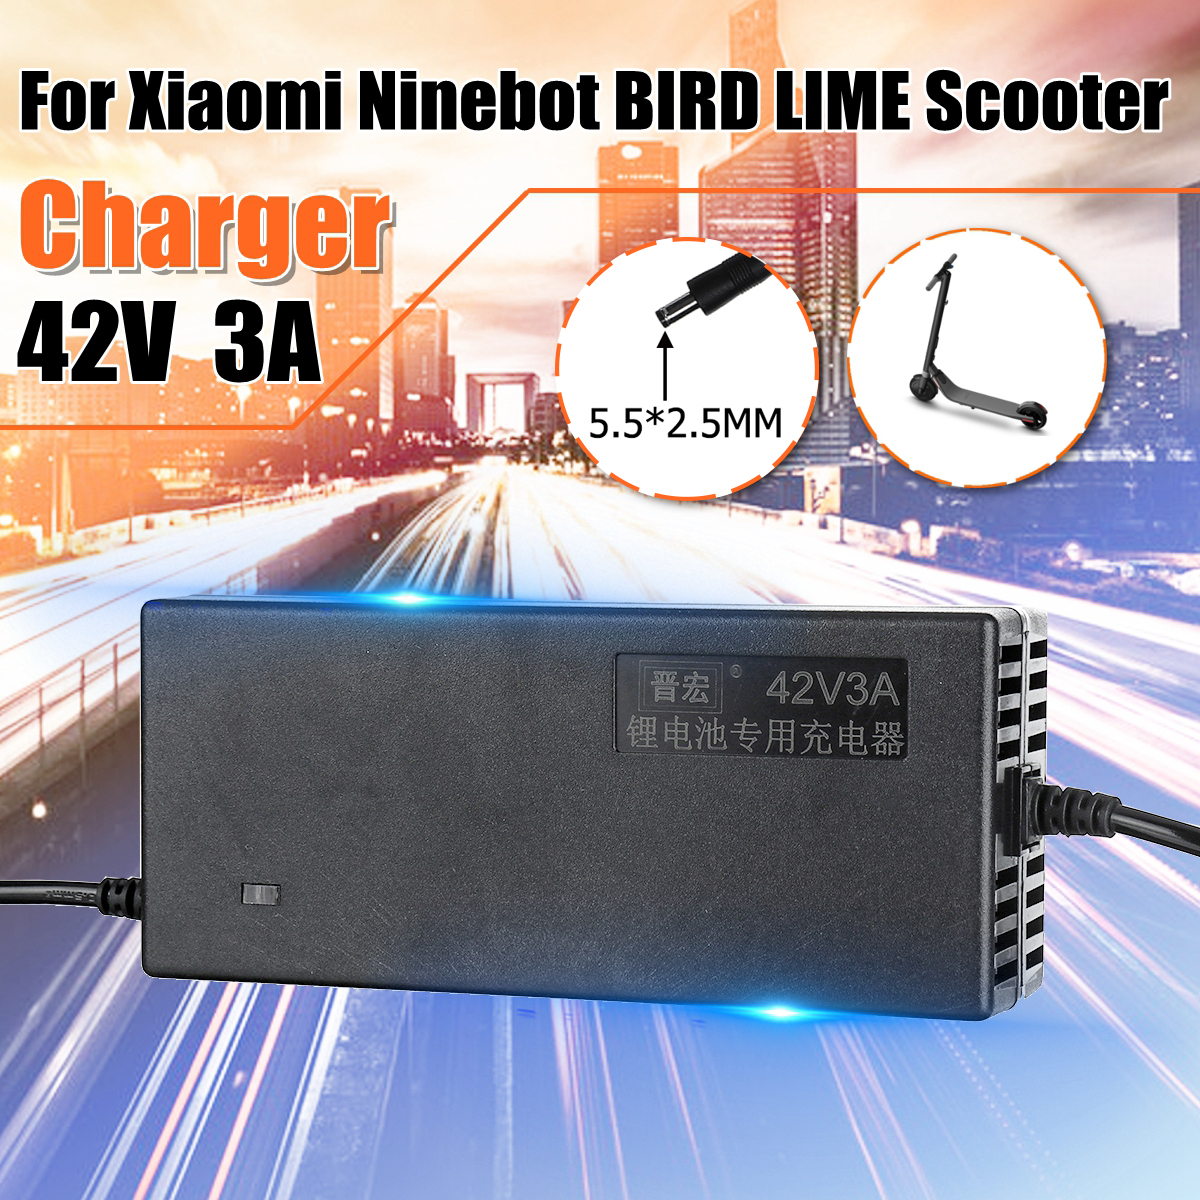 Seller*Charger 2-Amp BIRD LIME Xiaomi Mijia M365 Electric Scooter DEAL *U.S